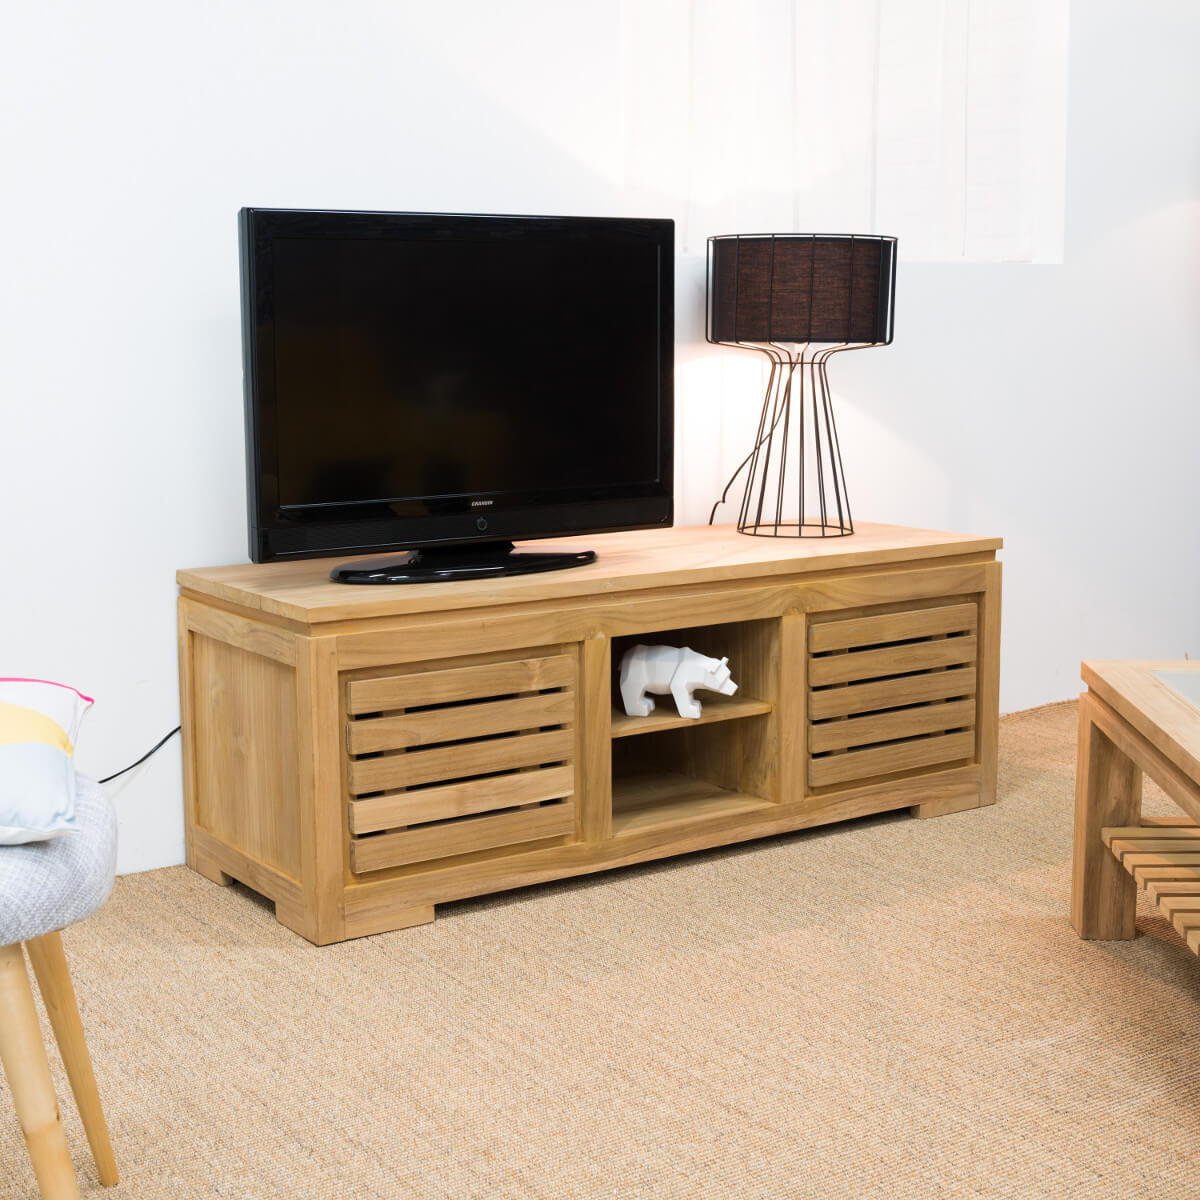 Meuble tv teck meuble tv bois naturel rectangle zen for Meuble tv original bois